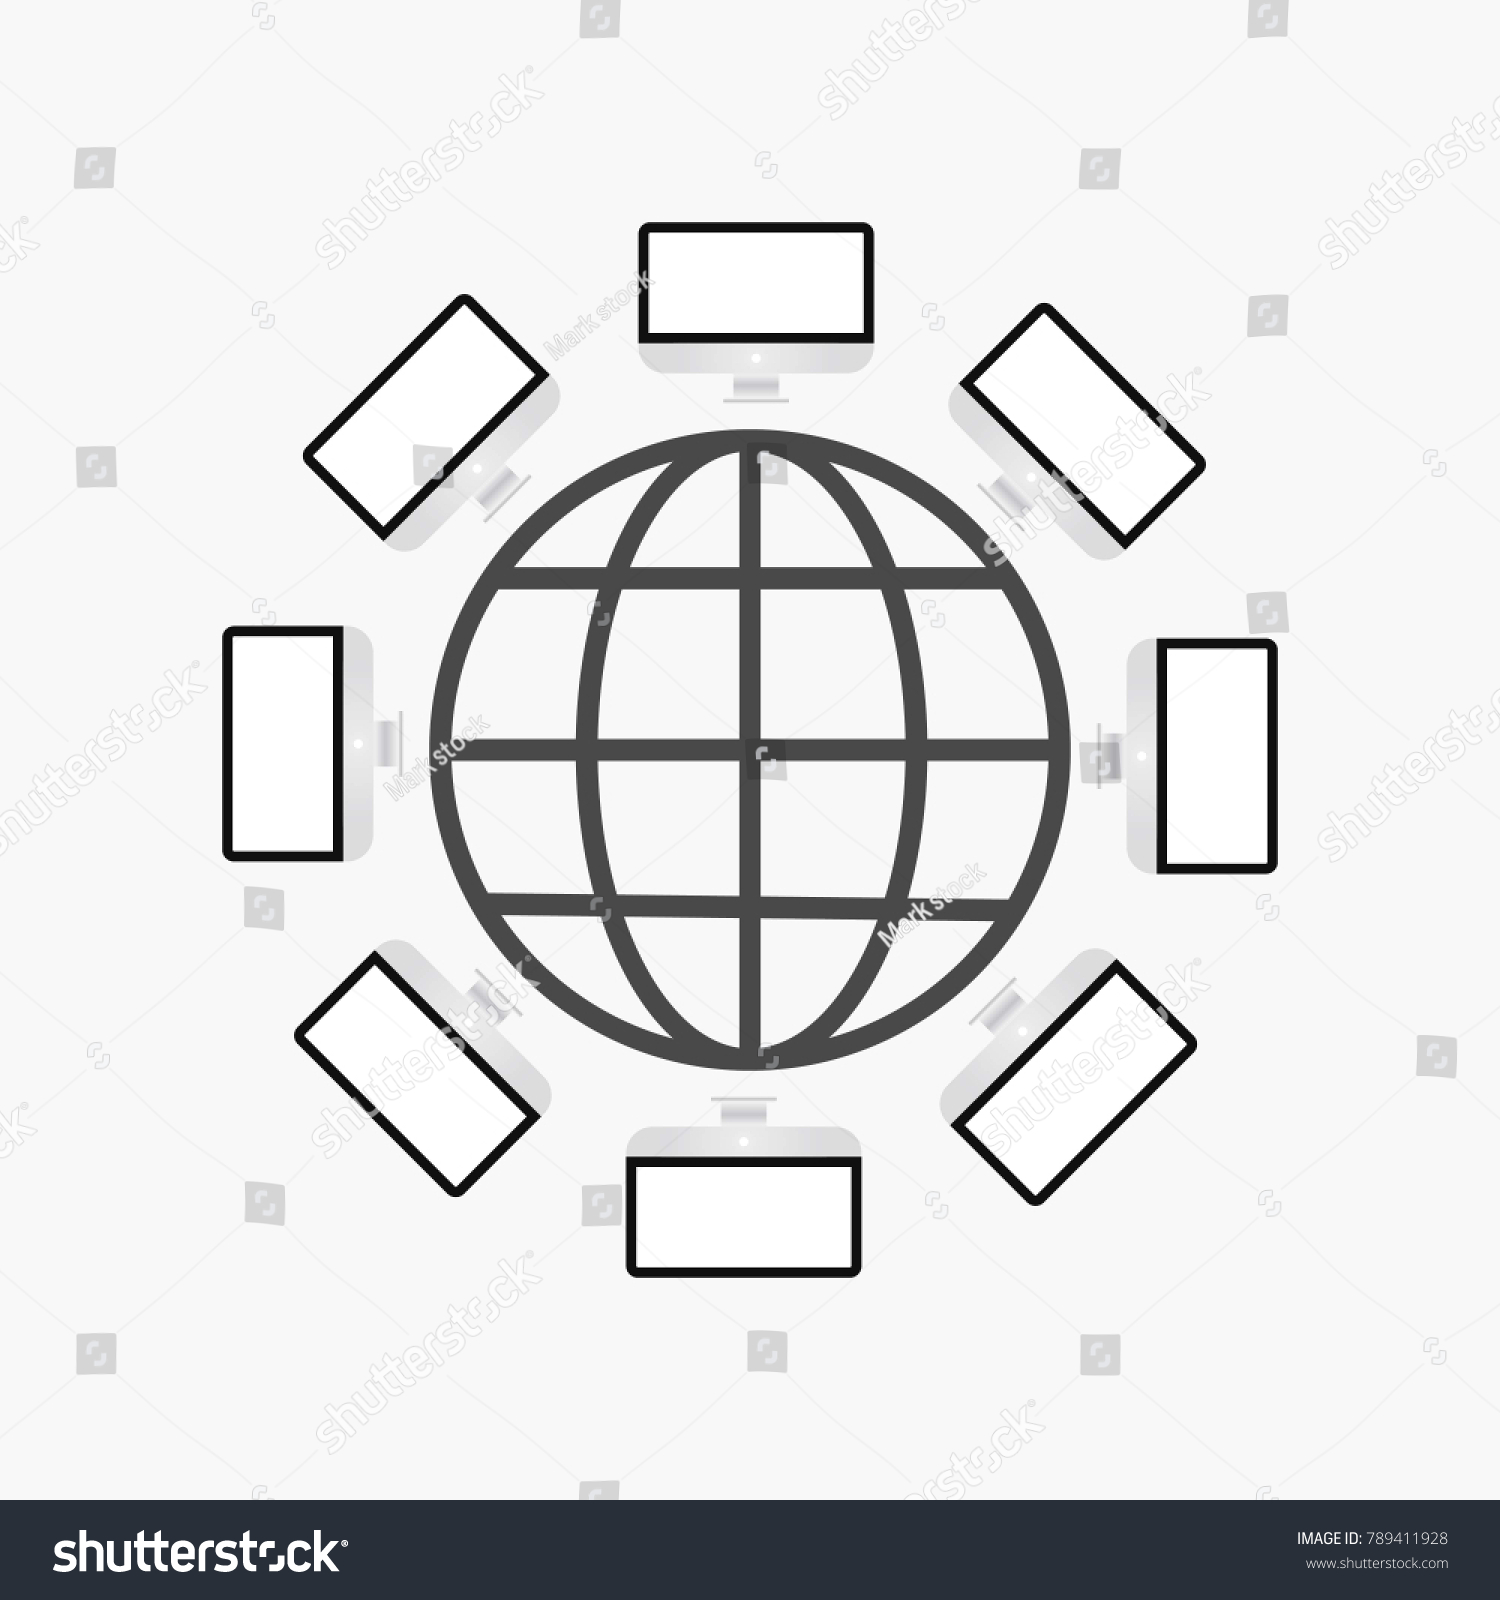 Computer Internet Network Connection Intranet Technology Stock Diagram World Wide Web With Desktop Computers Connected For Business And